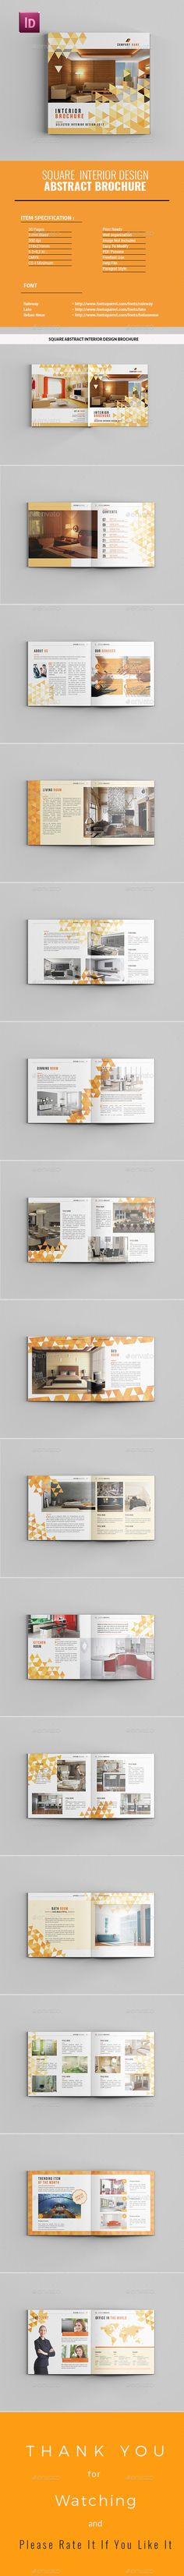 Square Abstract Interior Design Brochure Template InDesign INDD